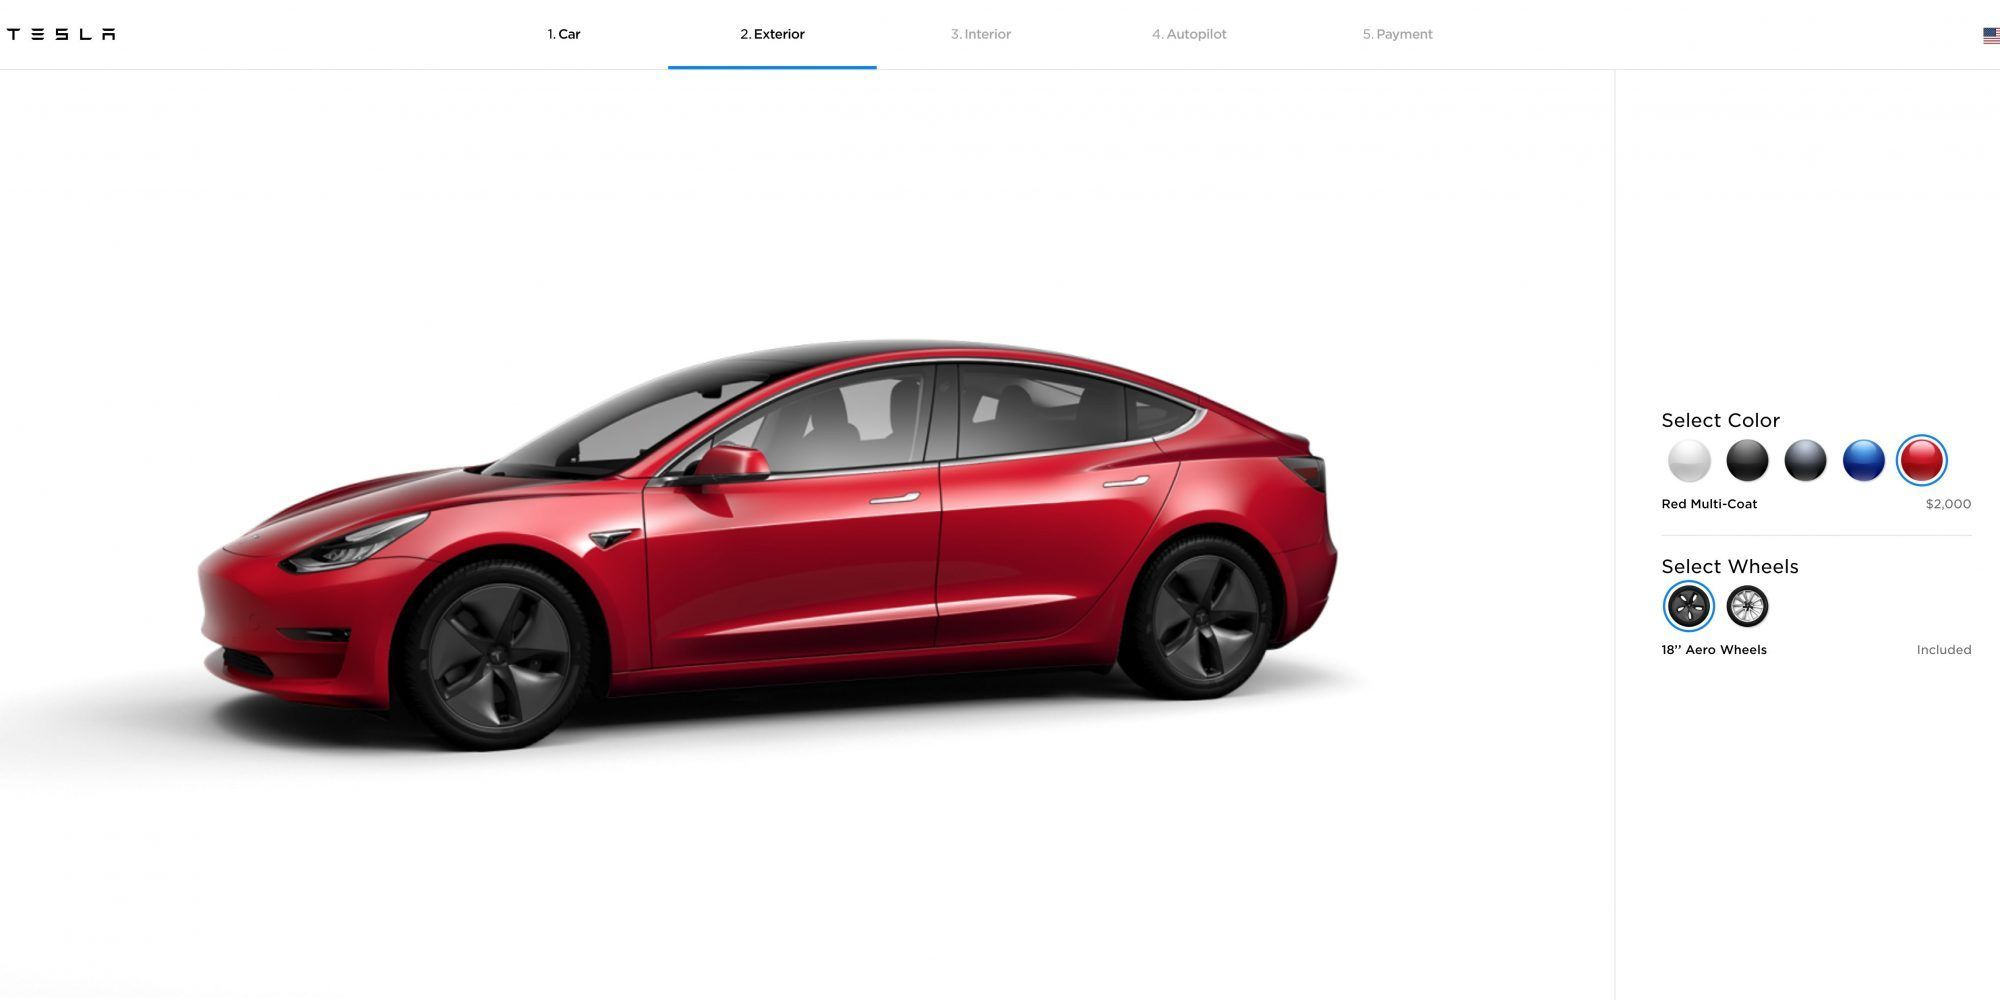 Tesla Reduces Price Of Model 3 Paint By 500 Across Lineup Tesla Tesla Model Technology